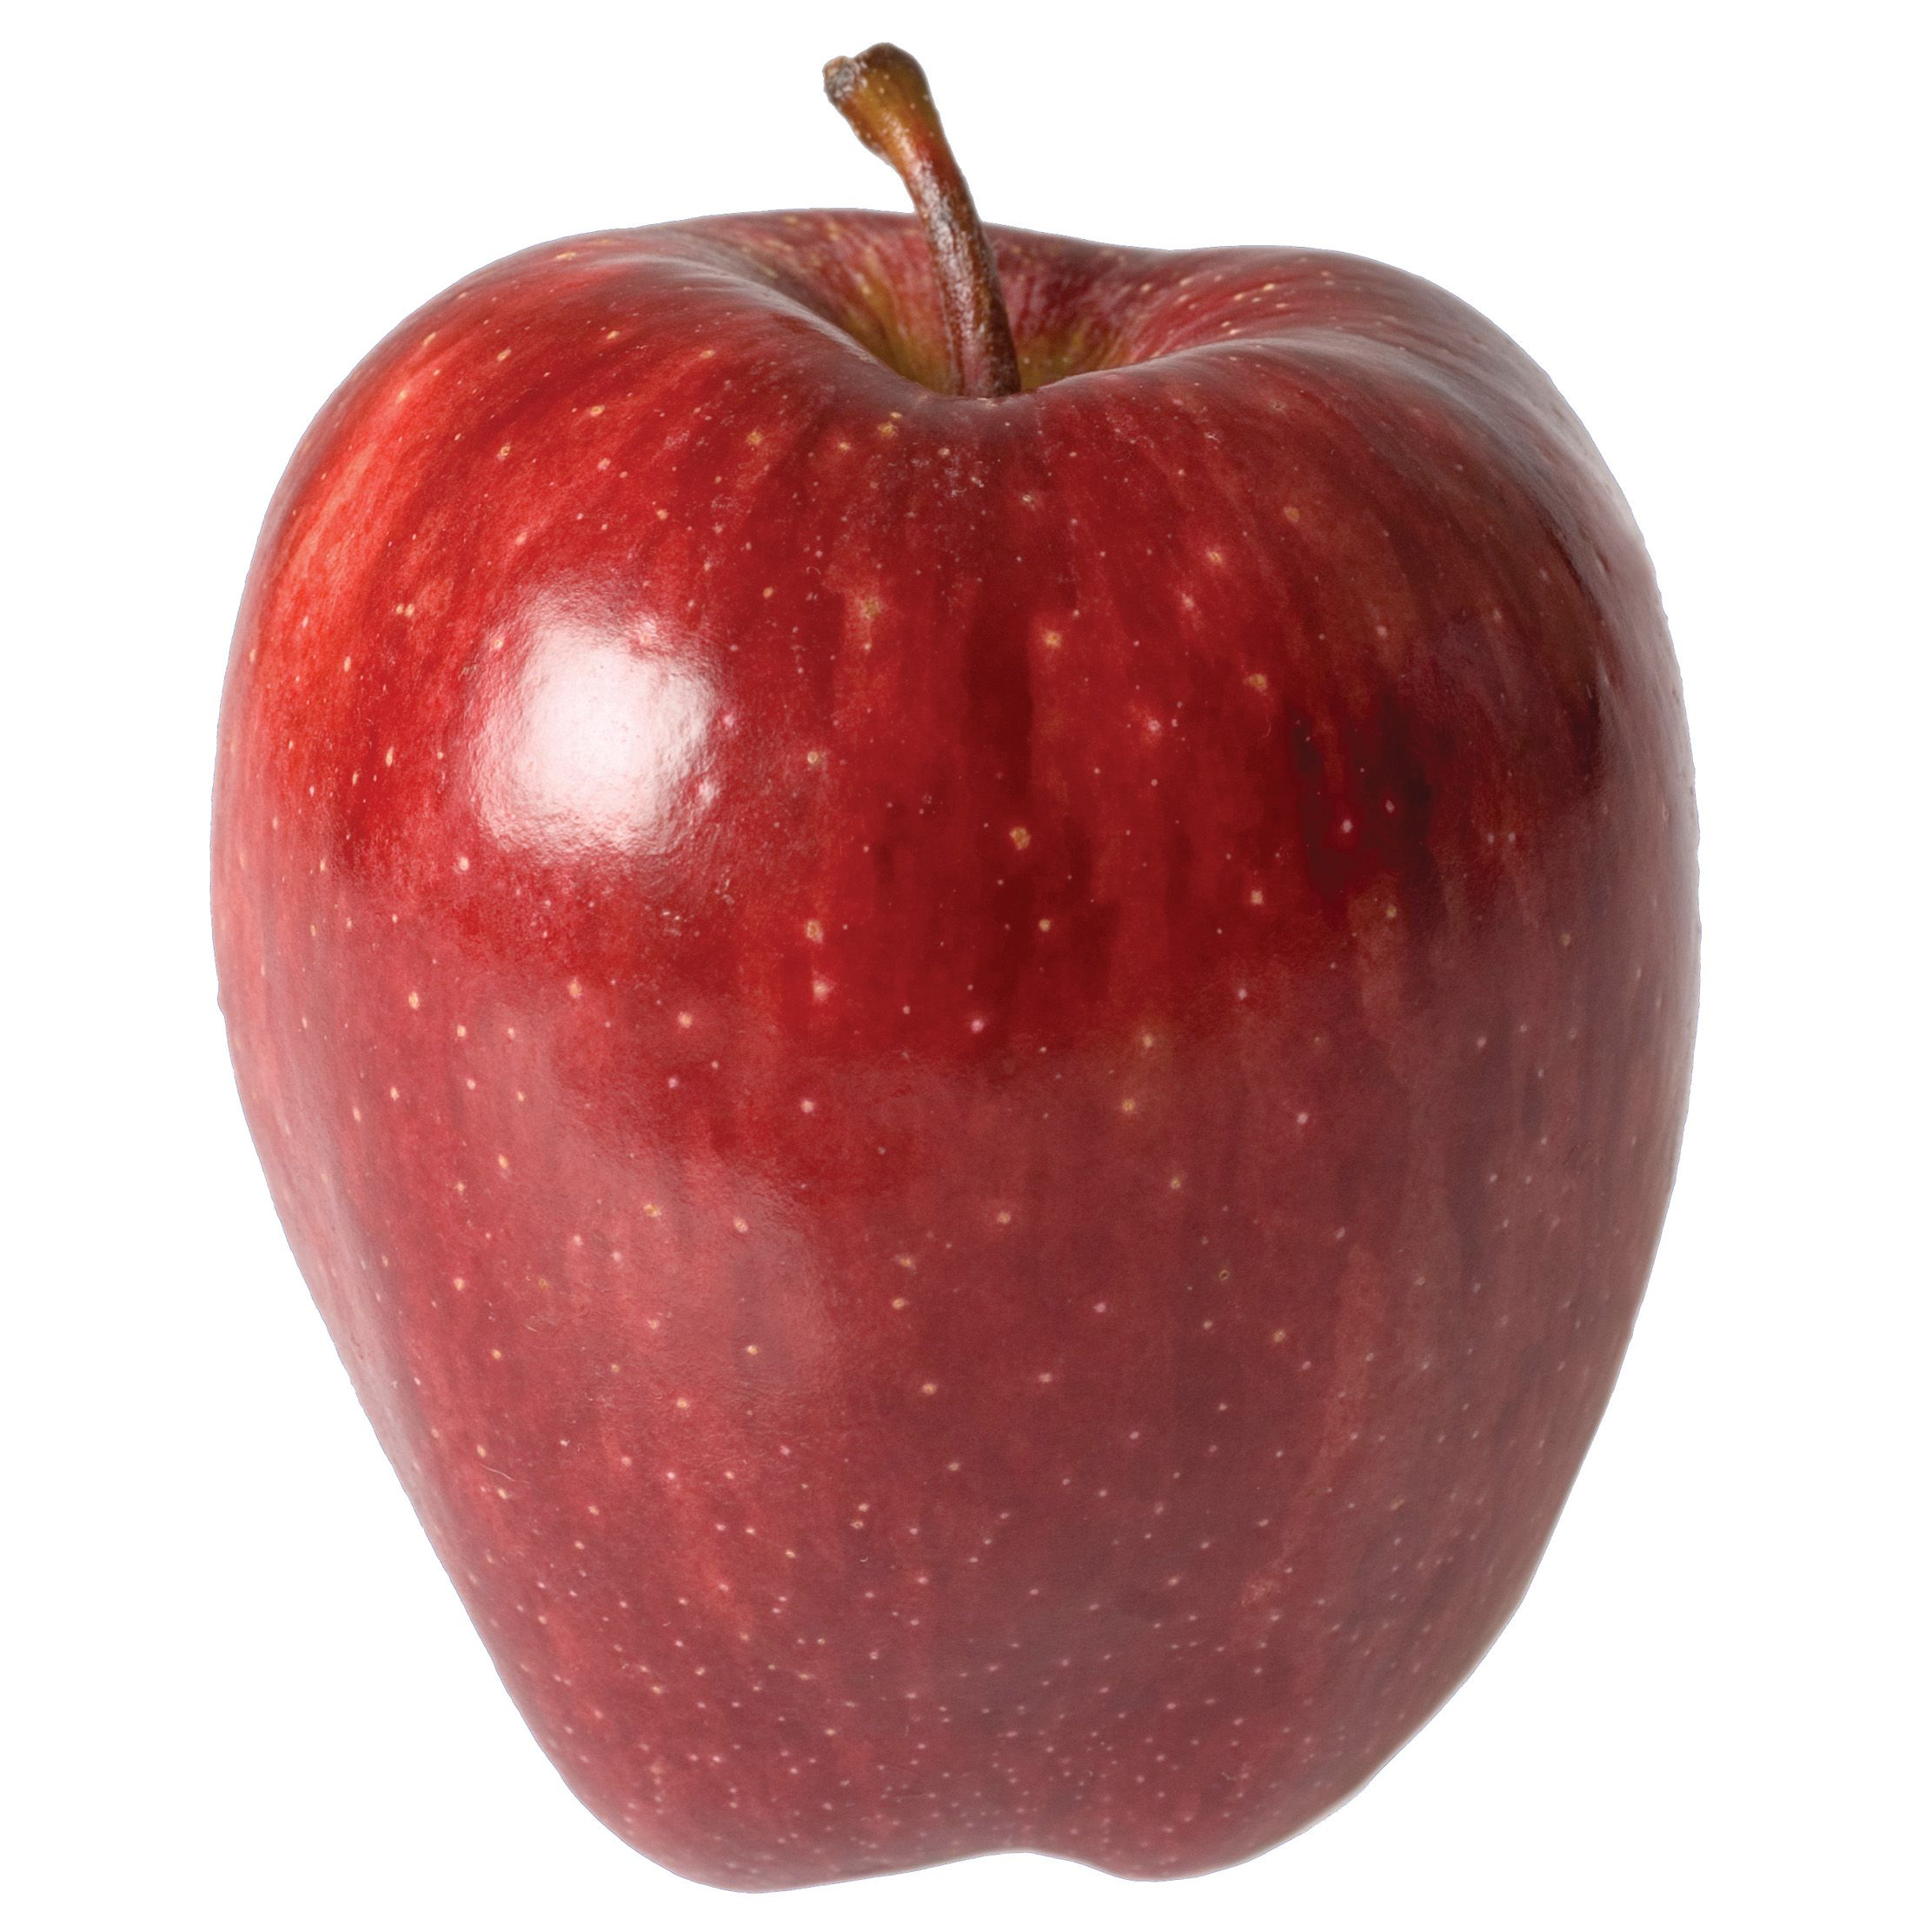 Calories in an Apple | Apples, Red apple and Veggies